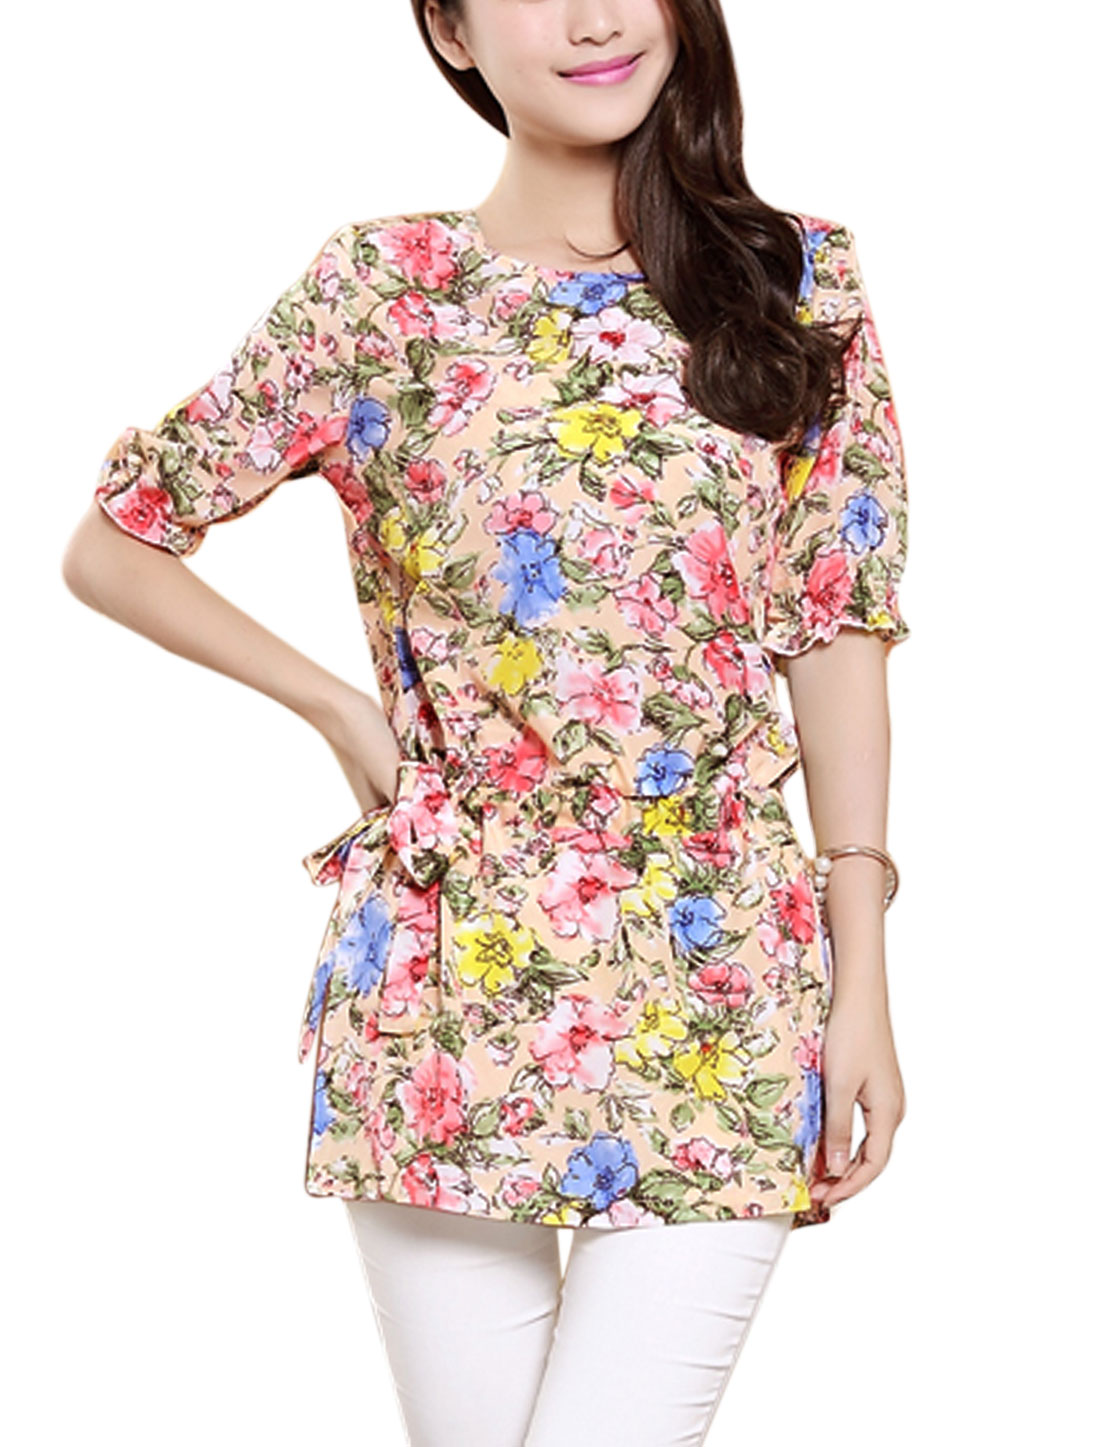 Lady Elastic Cuffs Drawstring Waist Floral Prints Tunic Top Multicolor XS